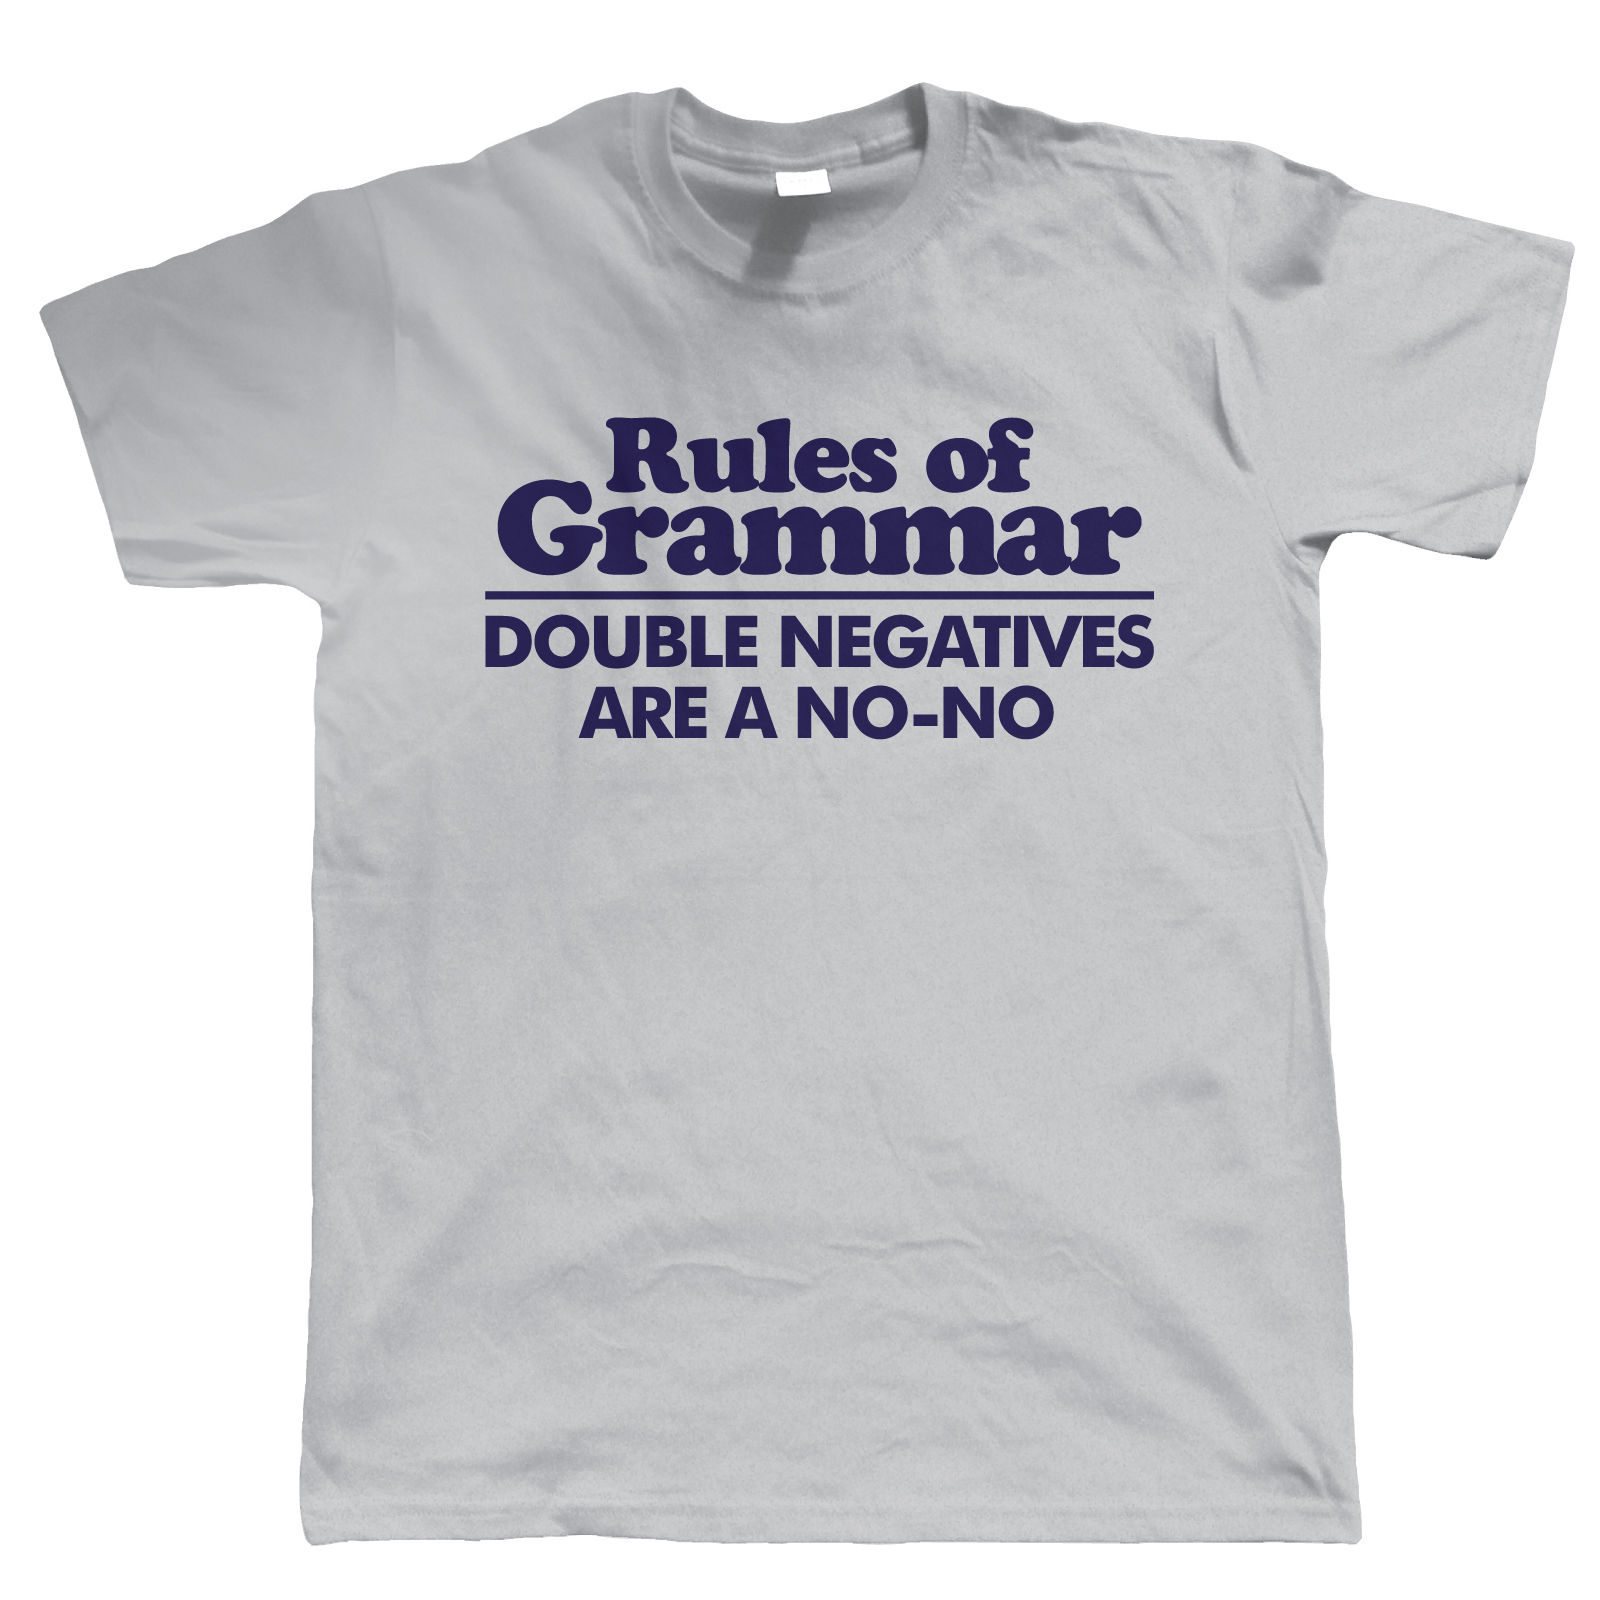 Rules Of Grammar Mens Funny T Shirt - Birthday Gift For Dad Him